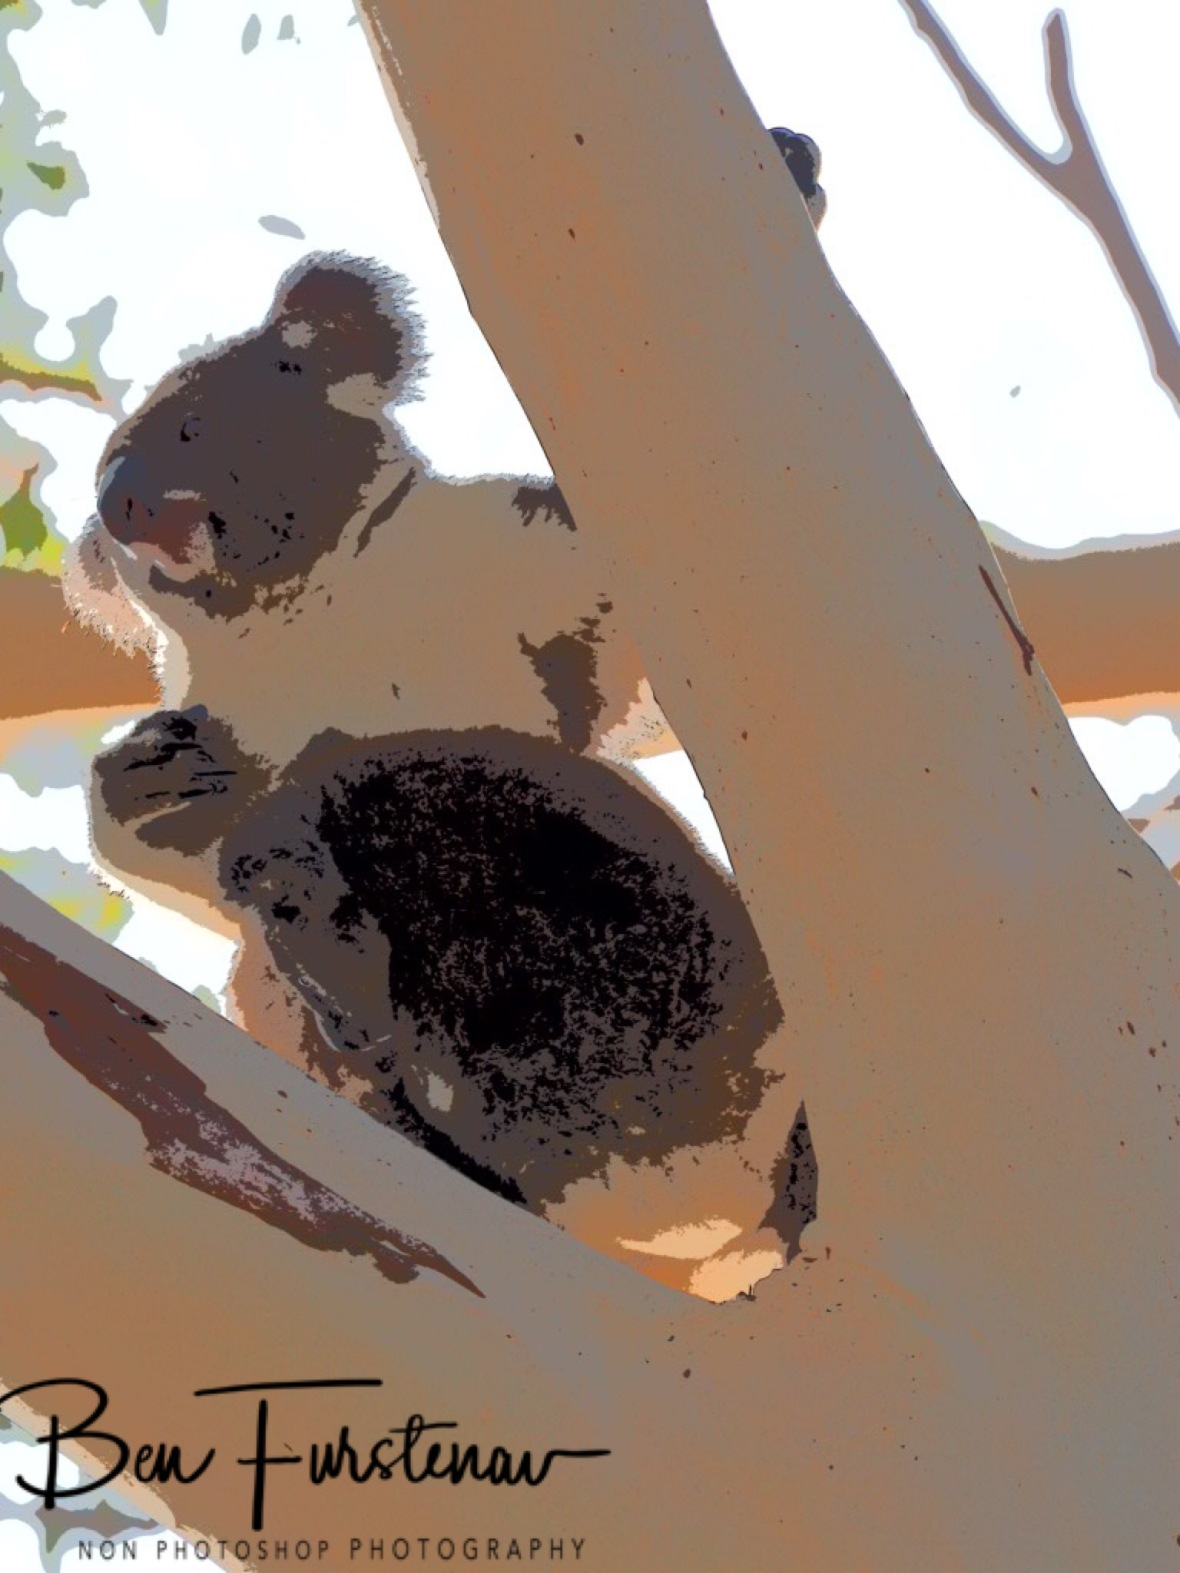 koala gymnastics at Woodburn, Northern New South Wales, Australia